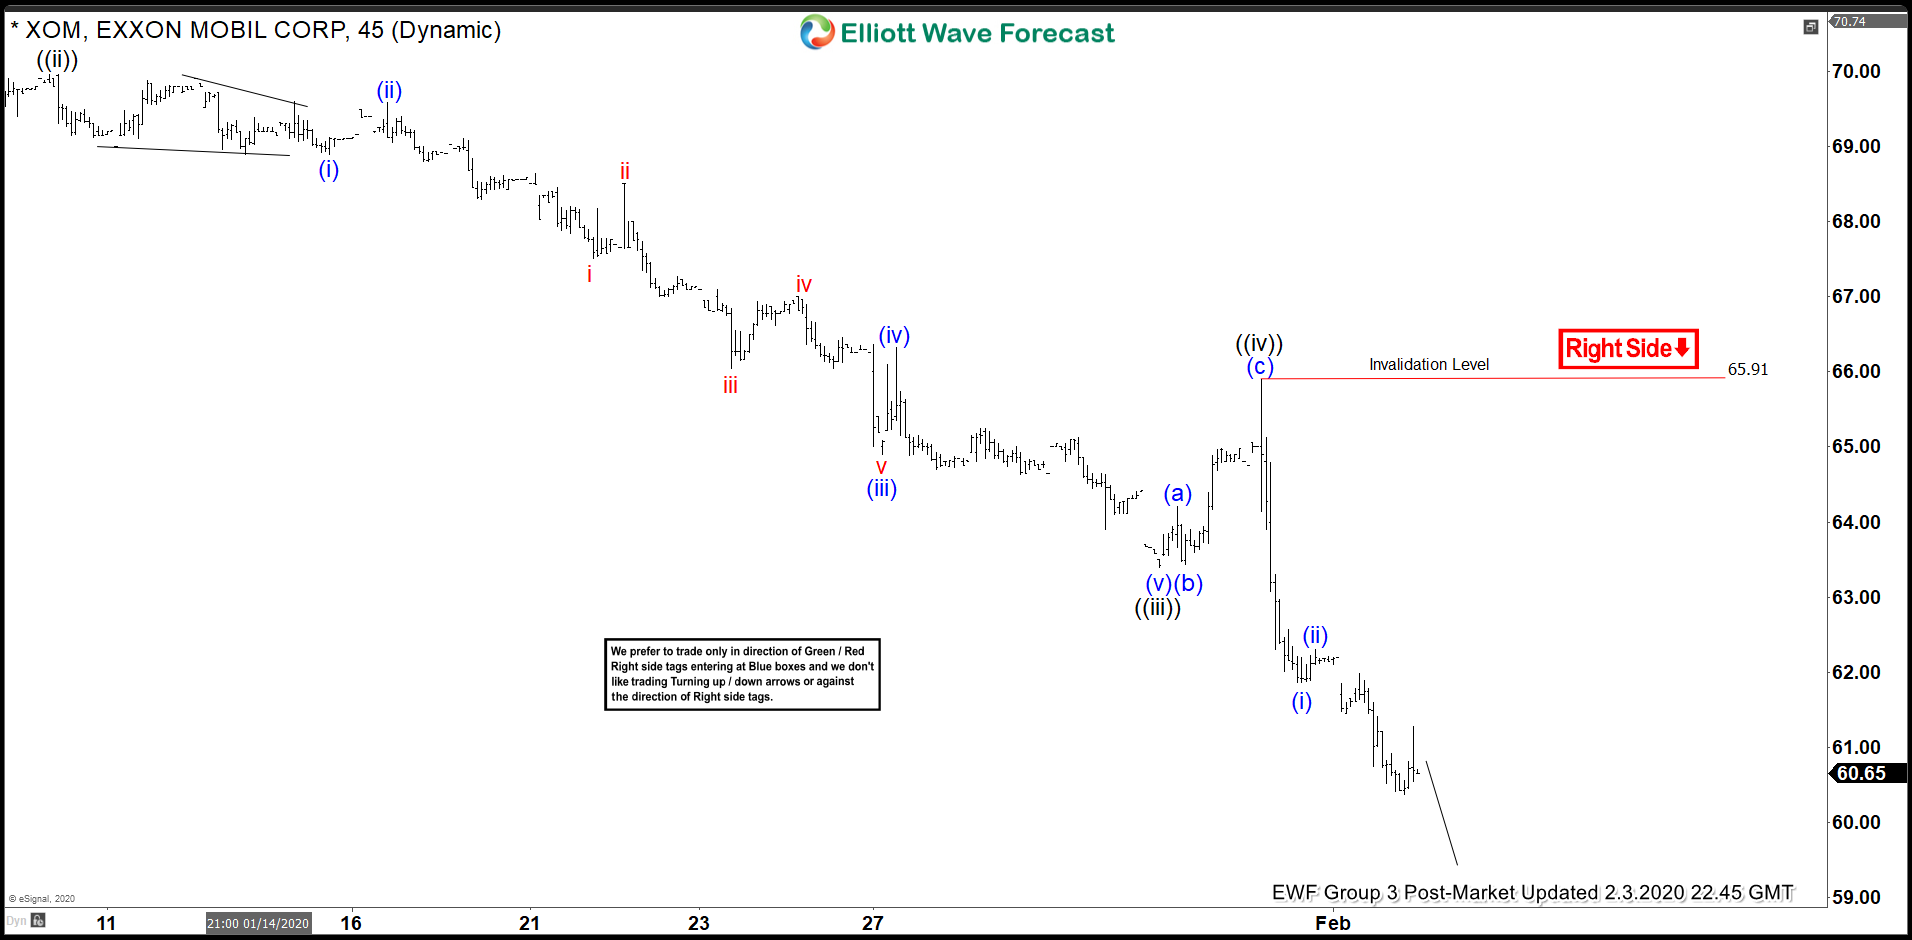 Elliott Wave View: Downside Target for Exxon Mobil